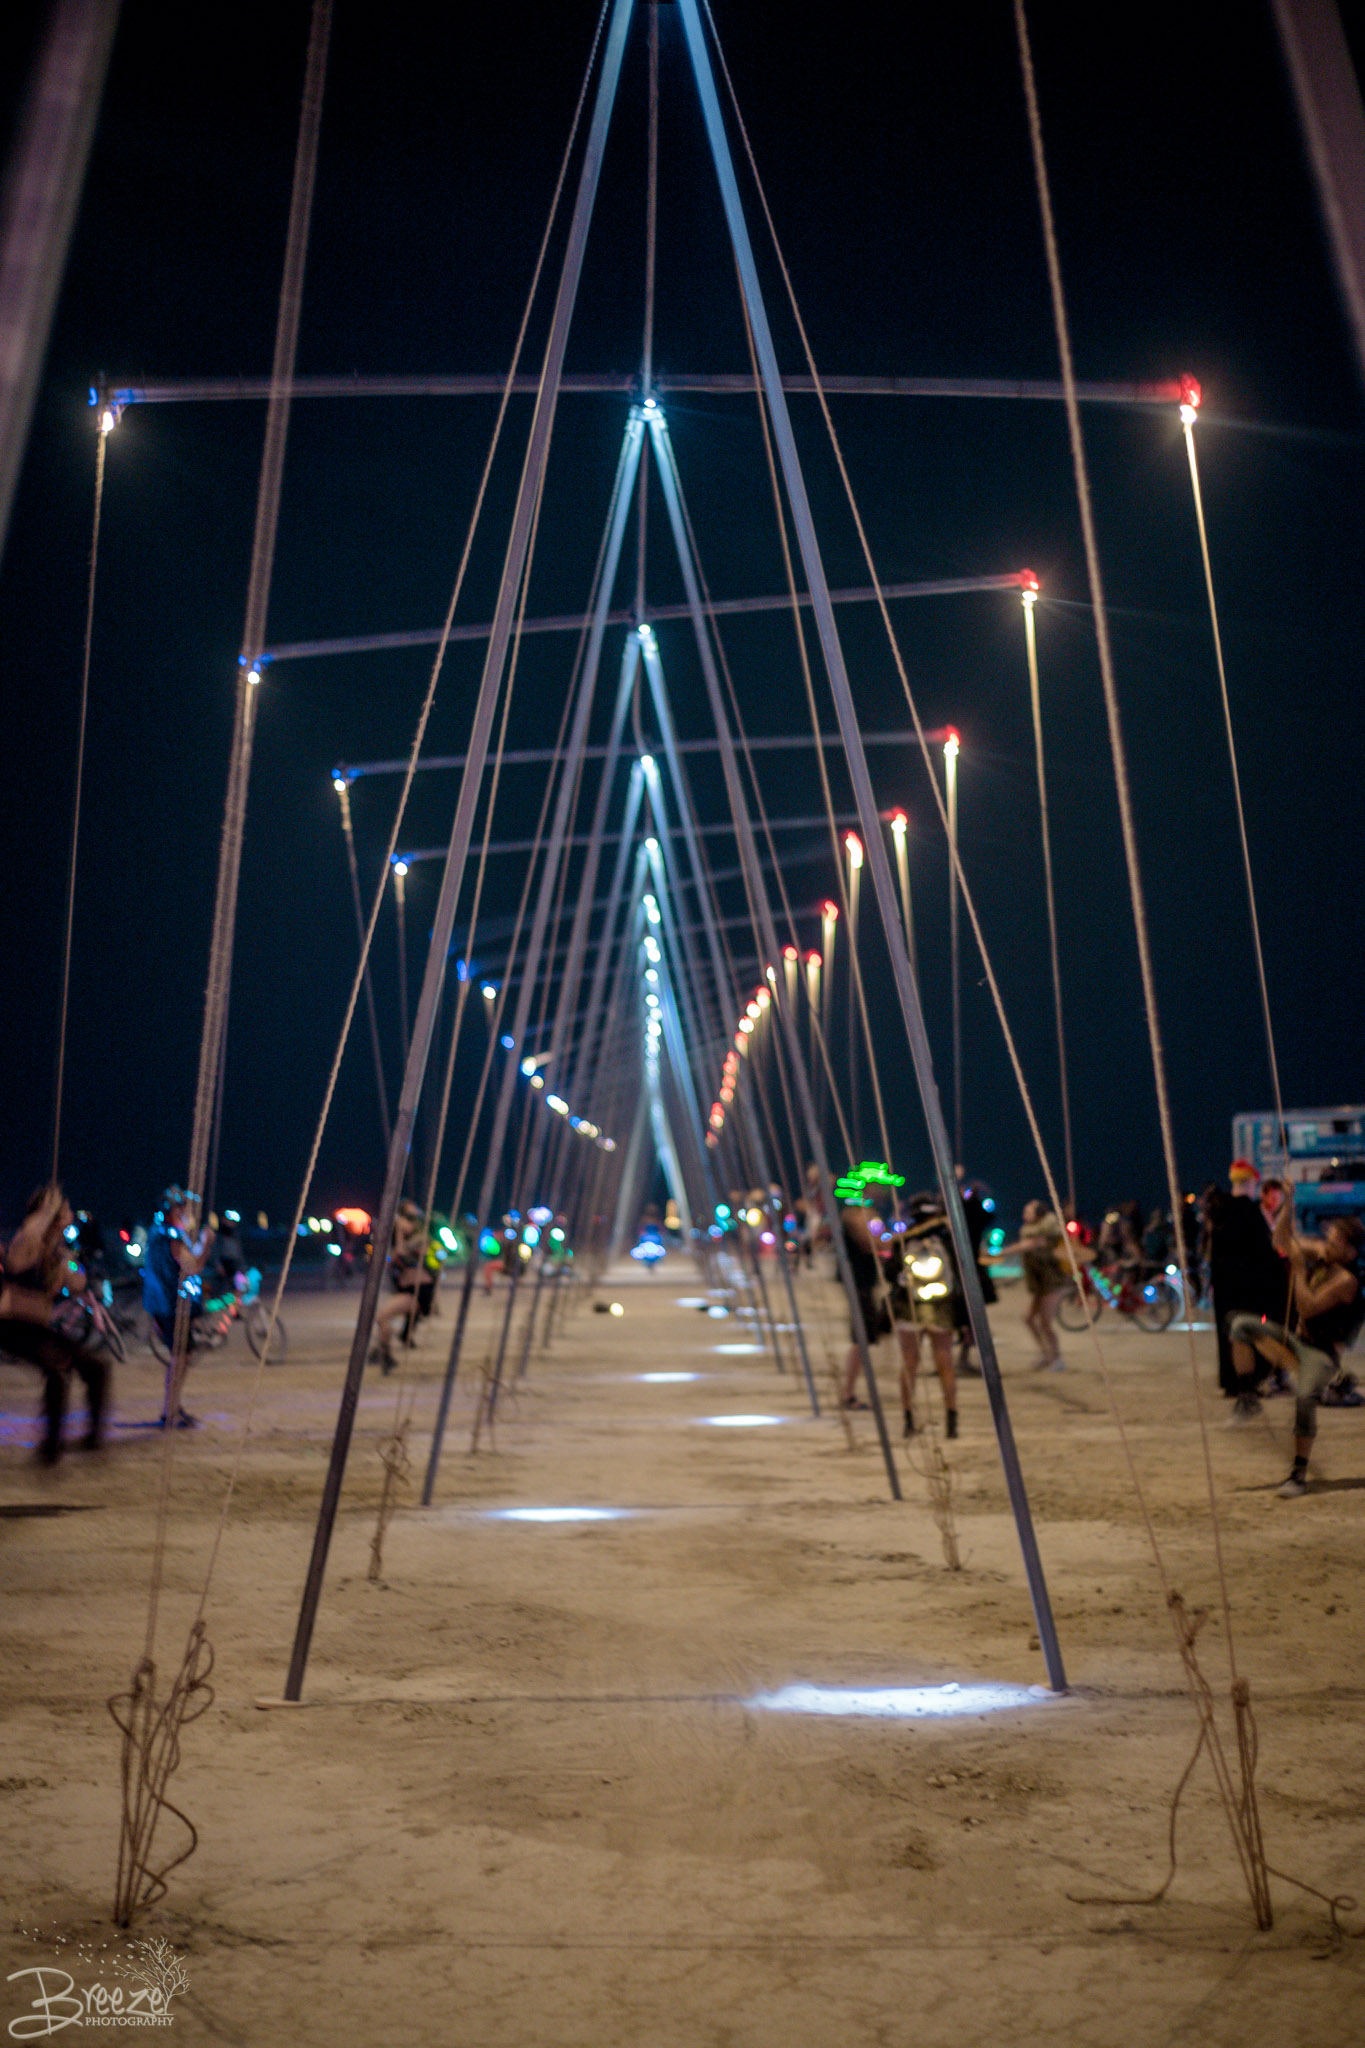 Brie'Ana Breeze Photography & Media - Burning Man 2018-2973.jpg